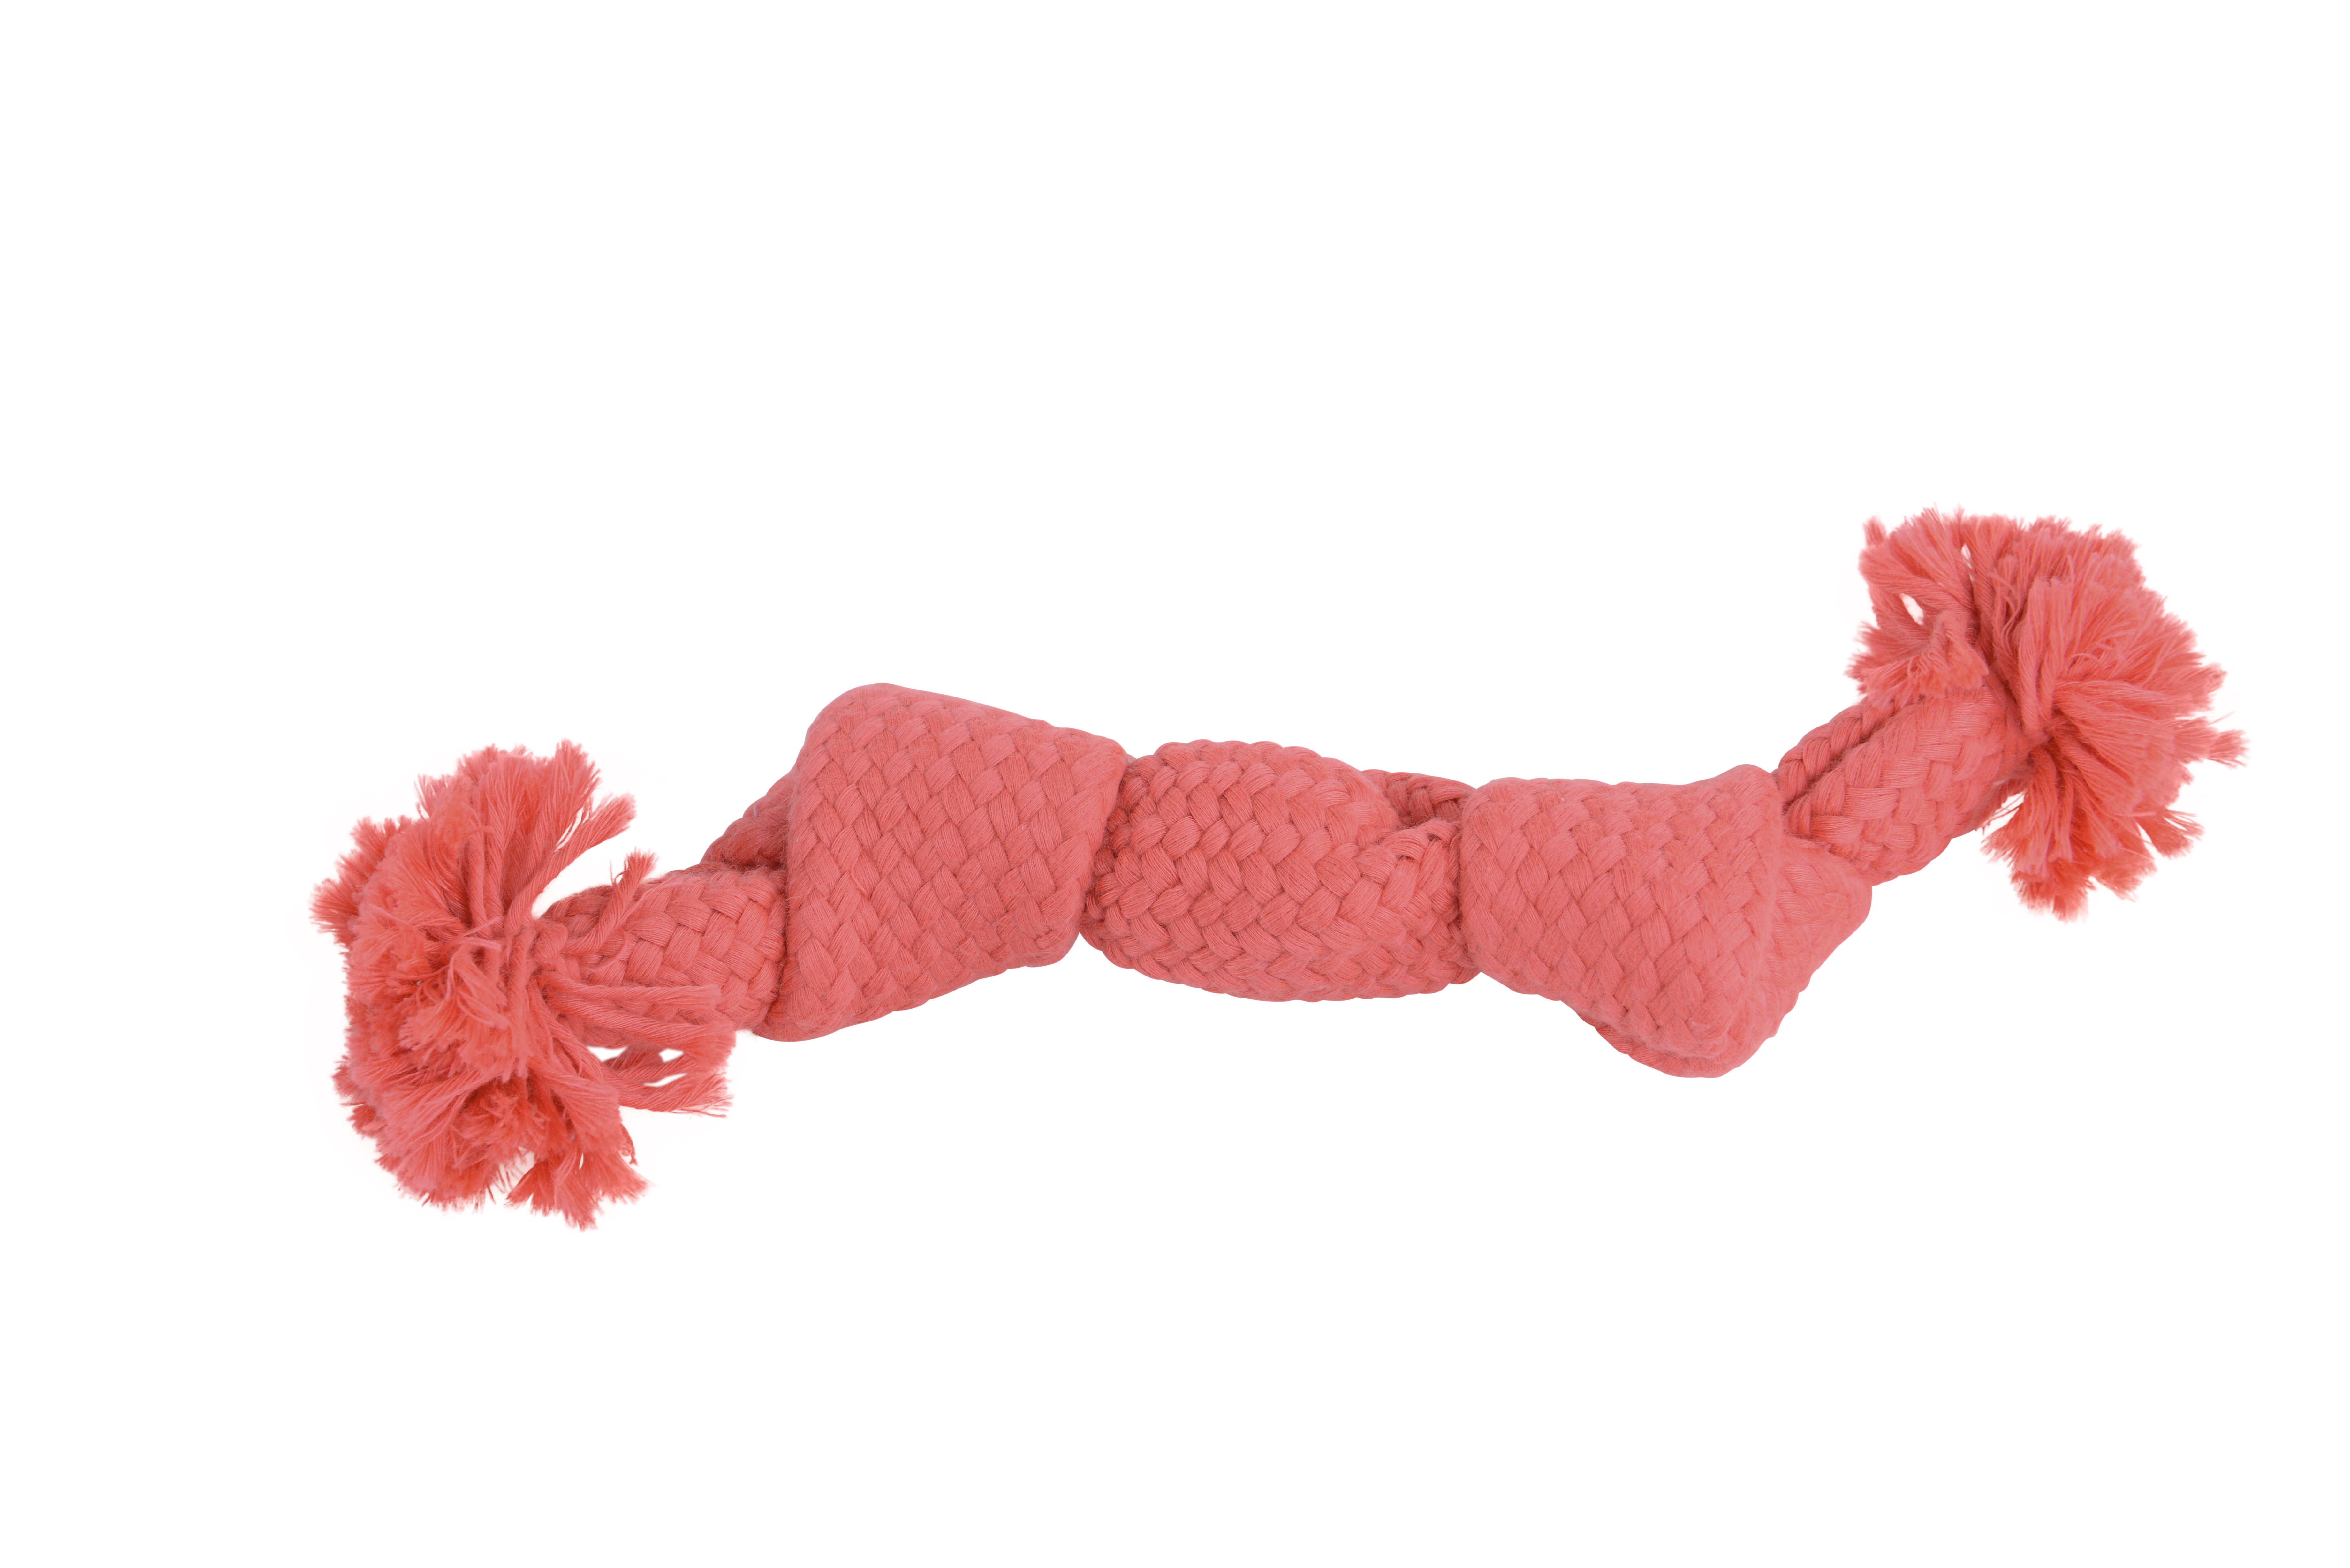 BUSTER Colour Squeak Rope, pink, 23 cm, S